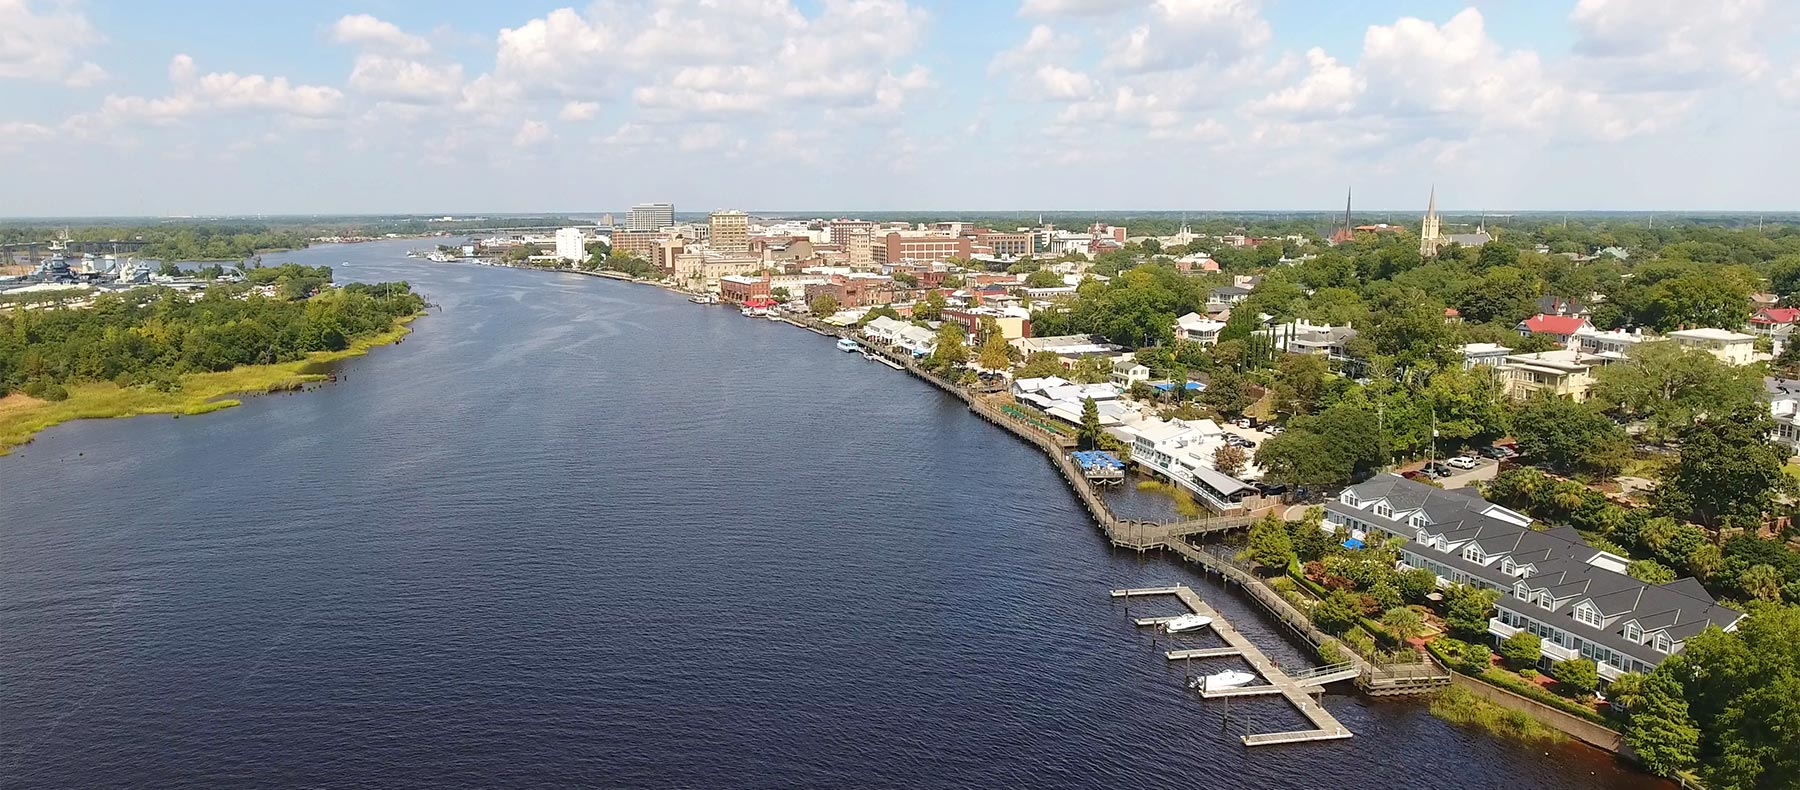 Aerial view of downtown Wilmington river front